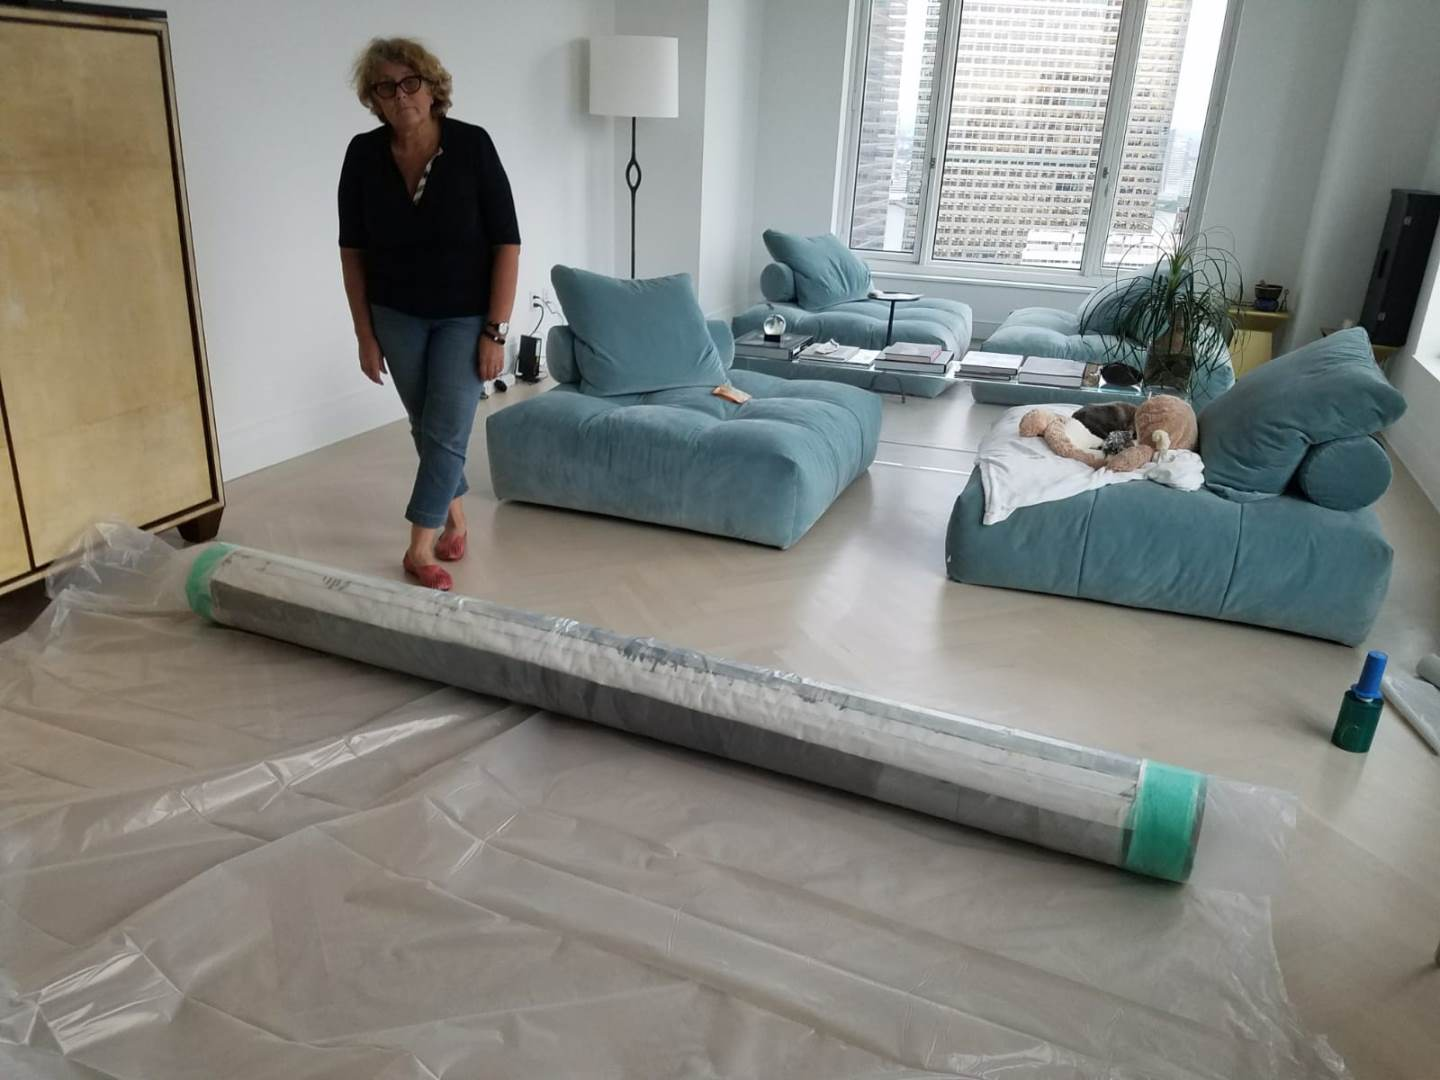 How to ship large paintings